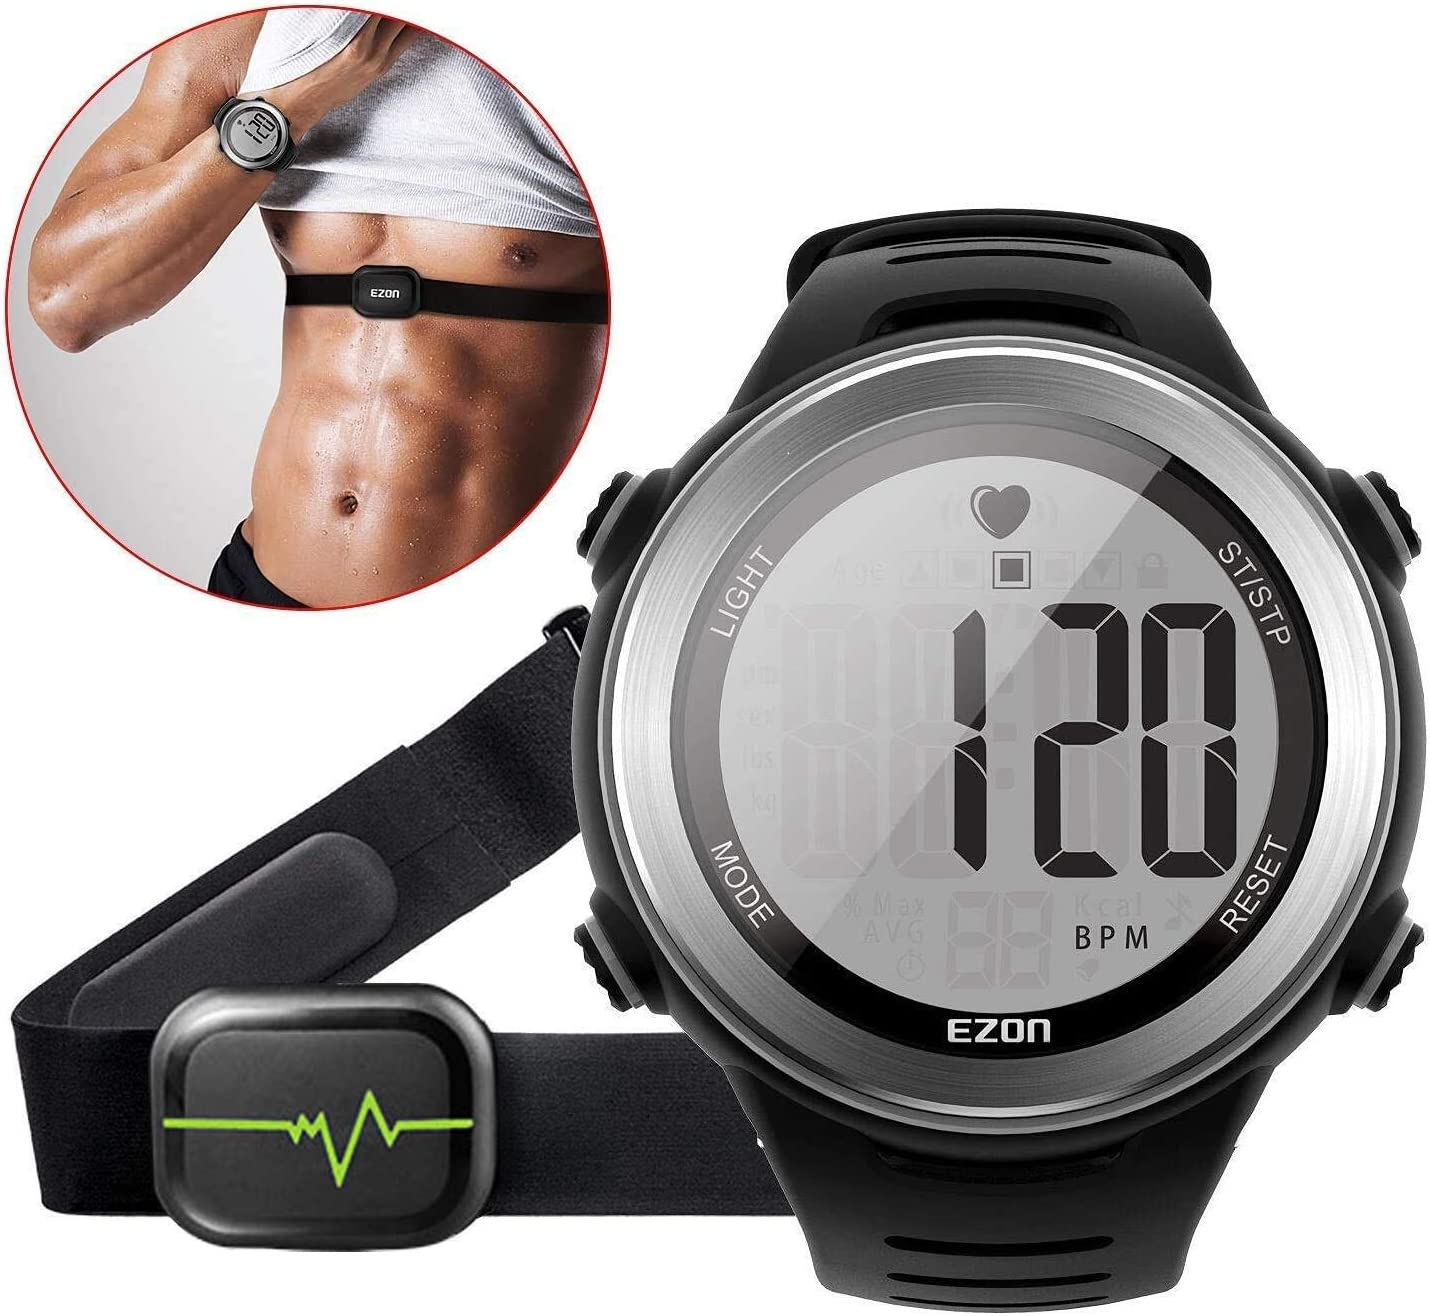 EZON Heart Rate Monitor Sports Watch with HRM Chest Strap,Waterproof,Stopwatch,Hourly Chime